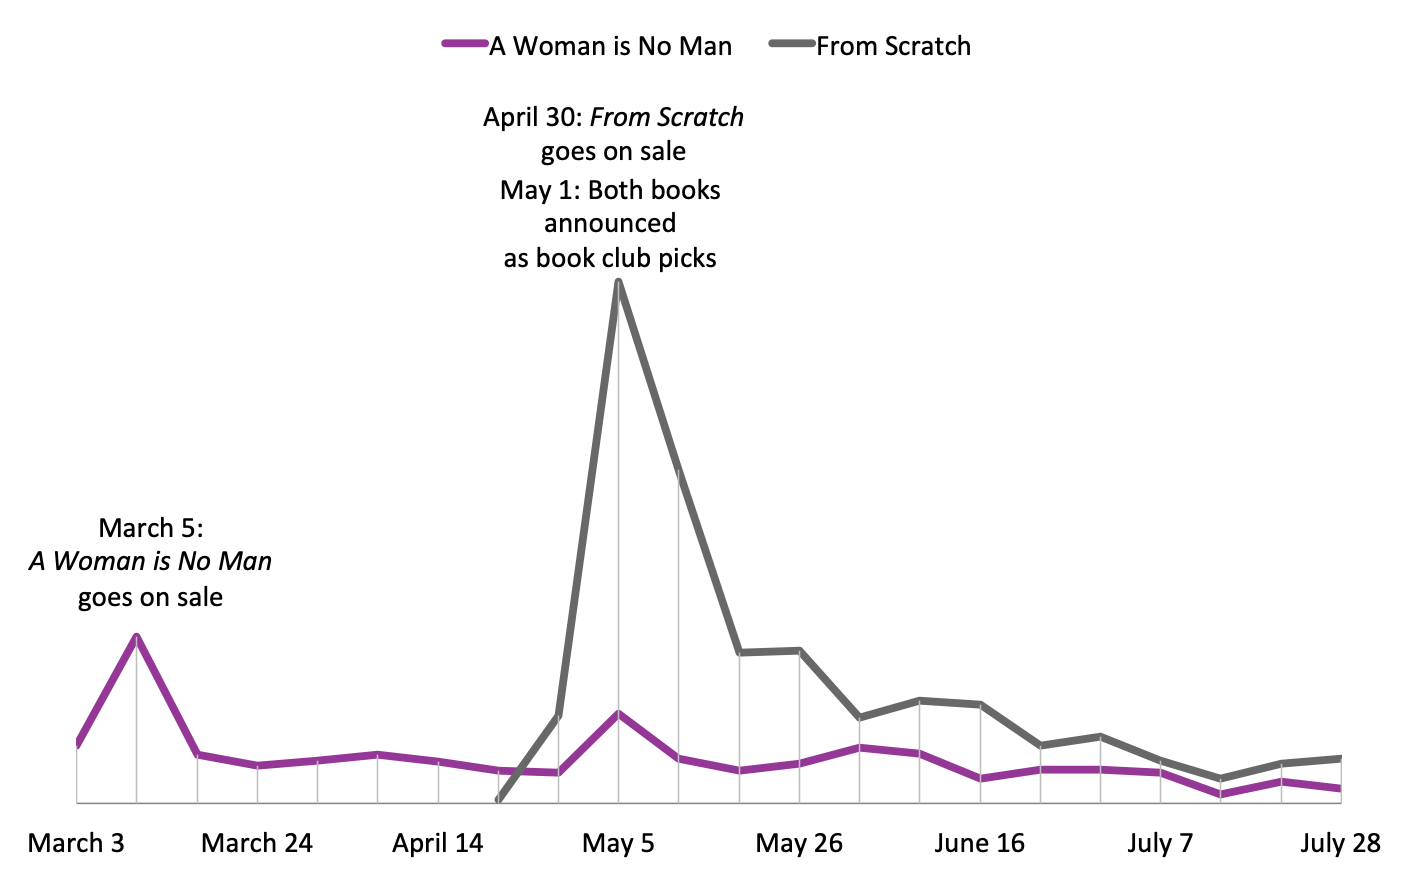 Graph showing sales of A Woman is No Man compared with sales of From Scratch.